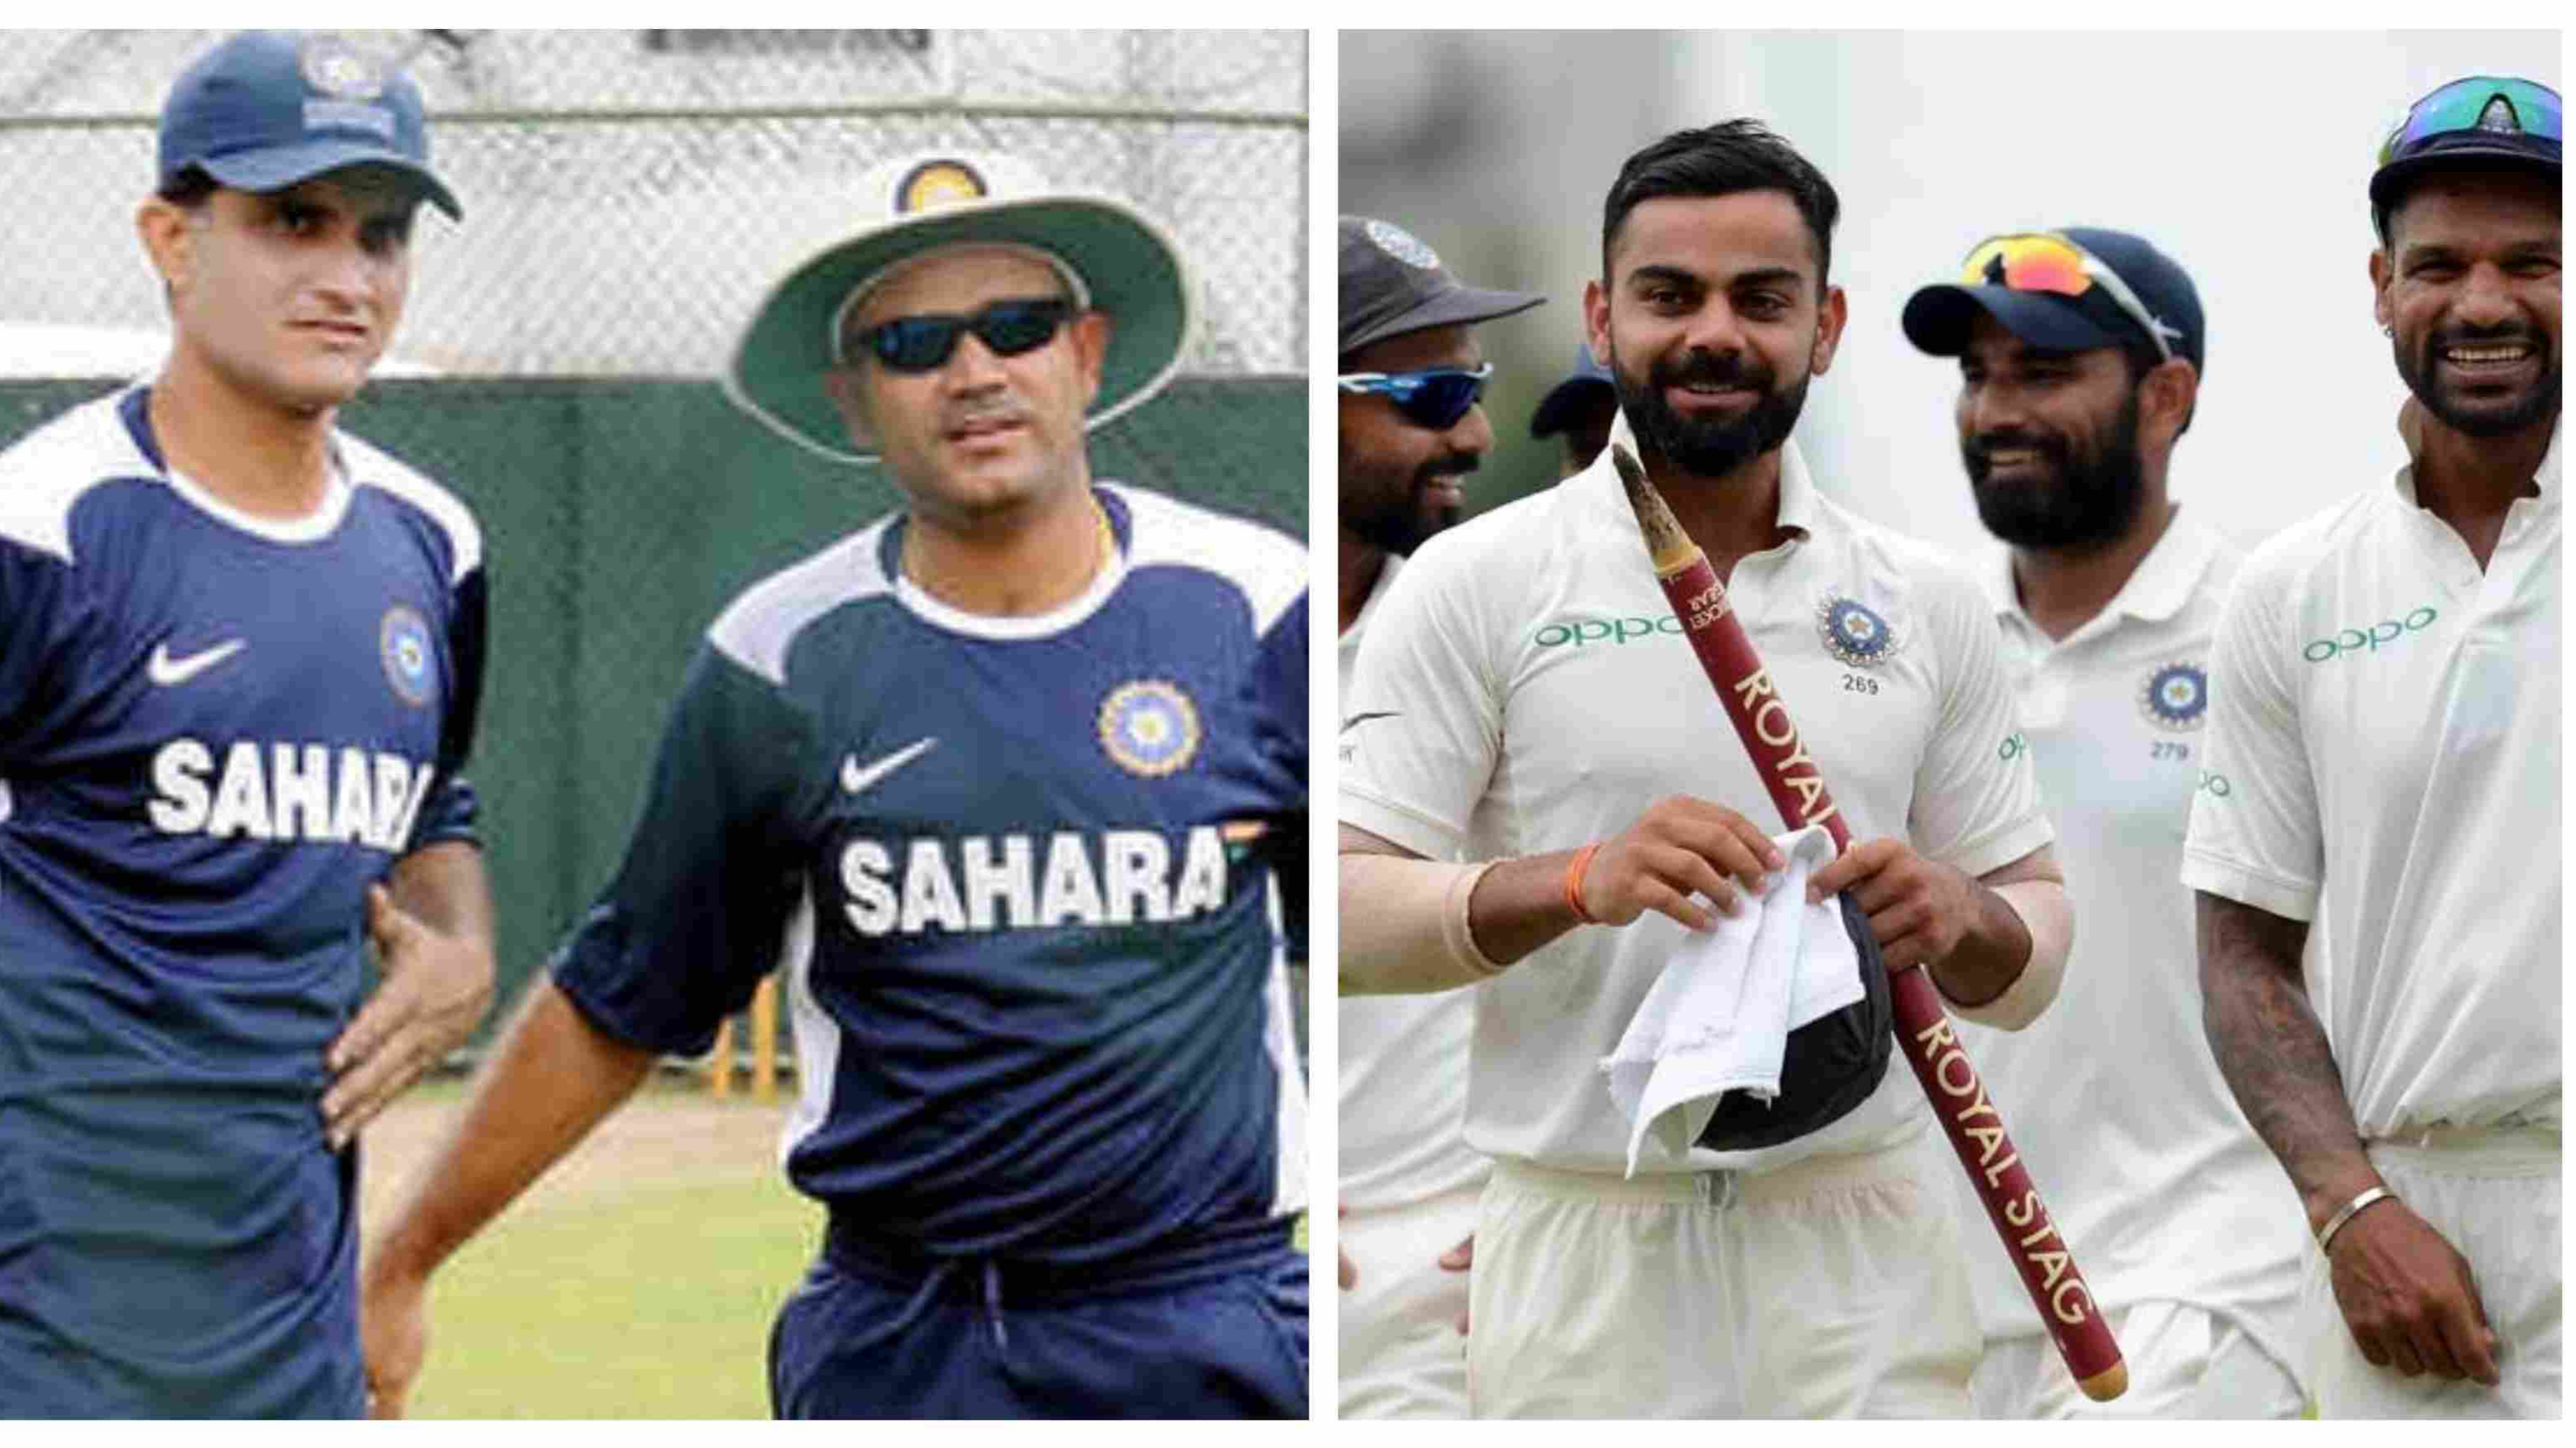 ENG v IND 2018: Sourav Ganguly, Virender Sehwag believe India have a fair chance of winning the Test series in England